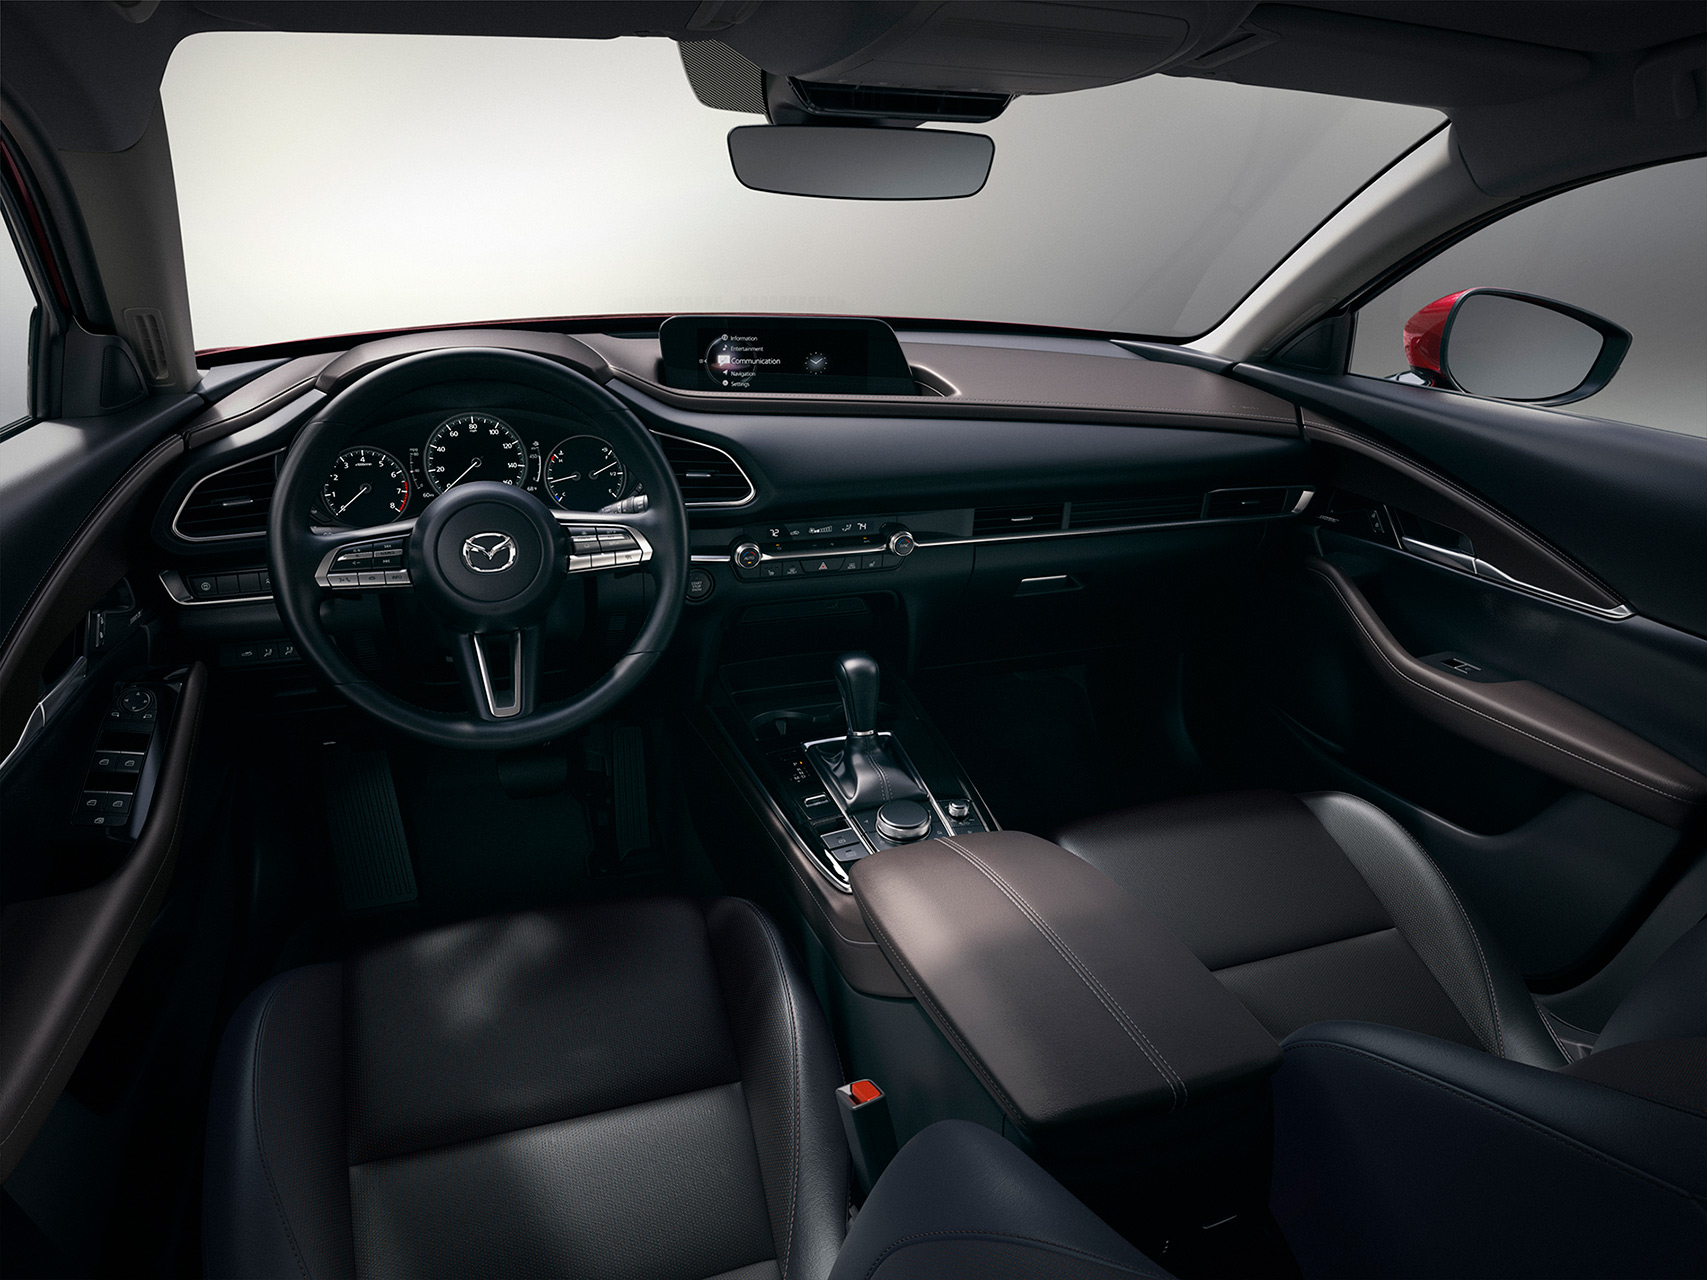 2019_CX-30_US(LHD)_C18_Cockpit_Dside_BlackLeather